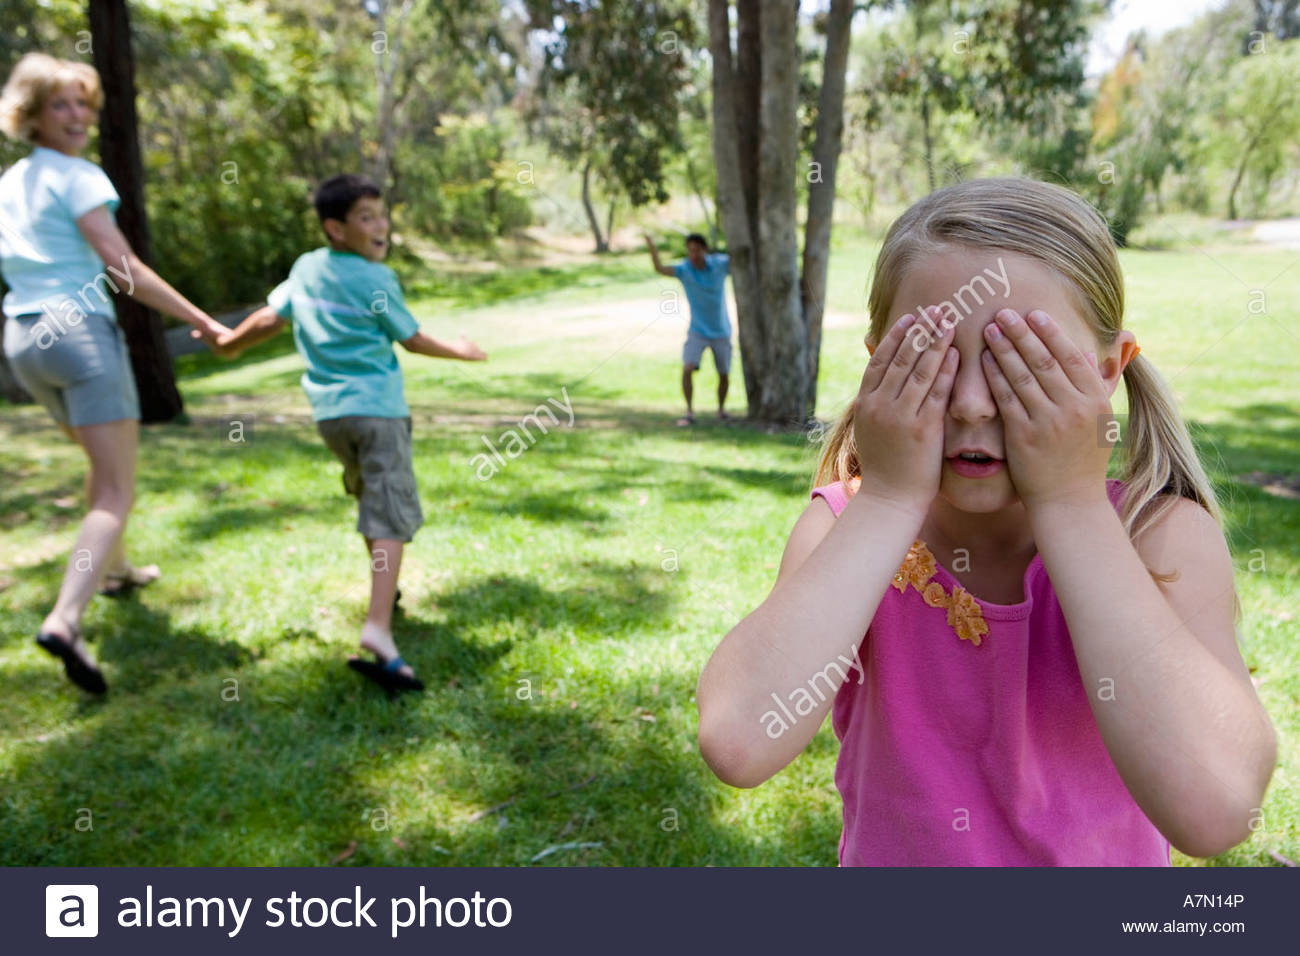 Family playing hide and seek in park focus on girl 8 10 covering eyes in foreground - Stock Image